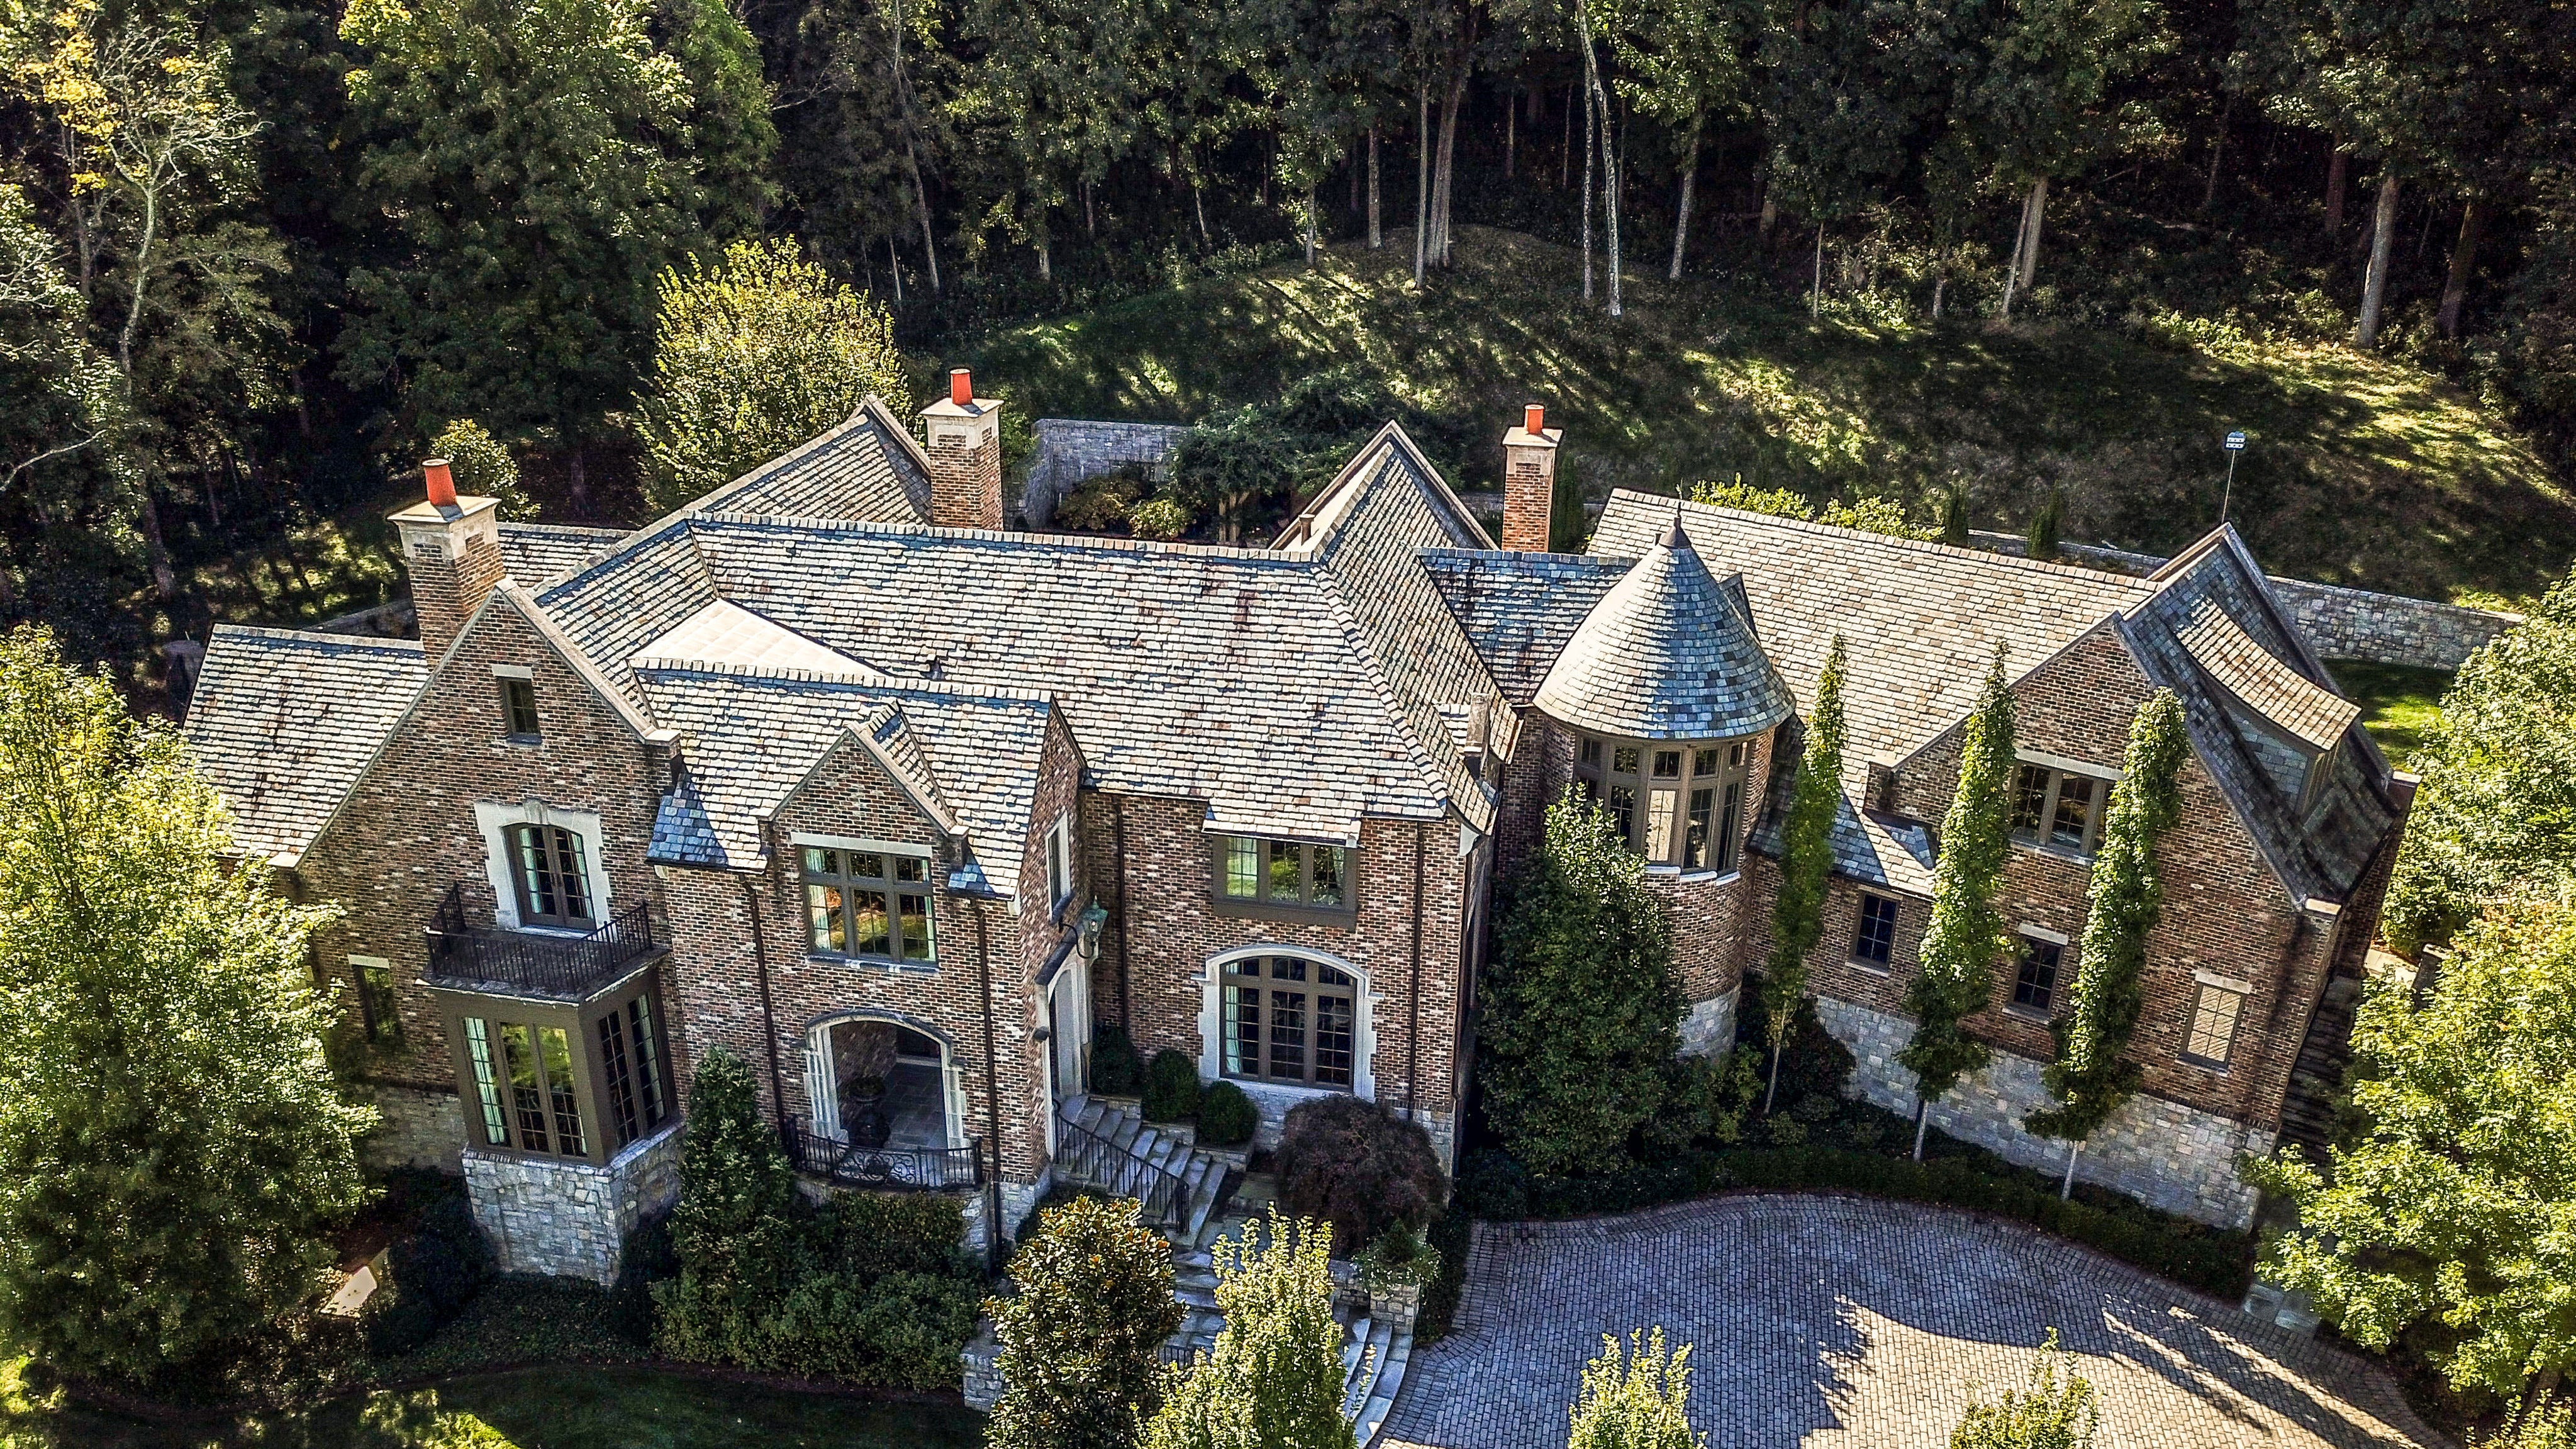 The 5-acre property at 919 Overton Lea Road backs up to Radnor Lake State Park.